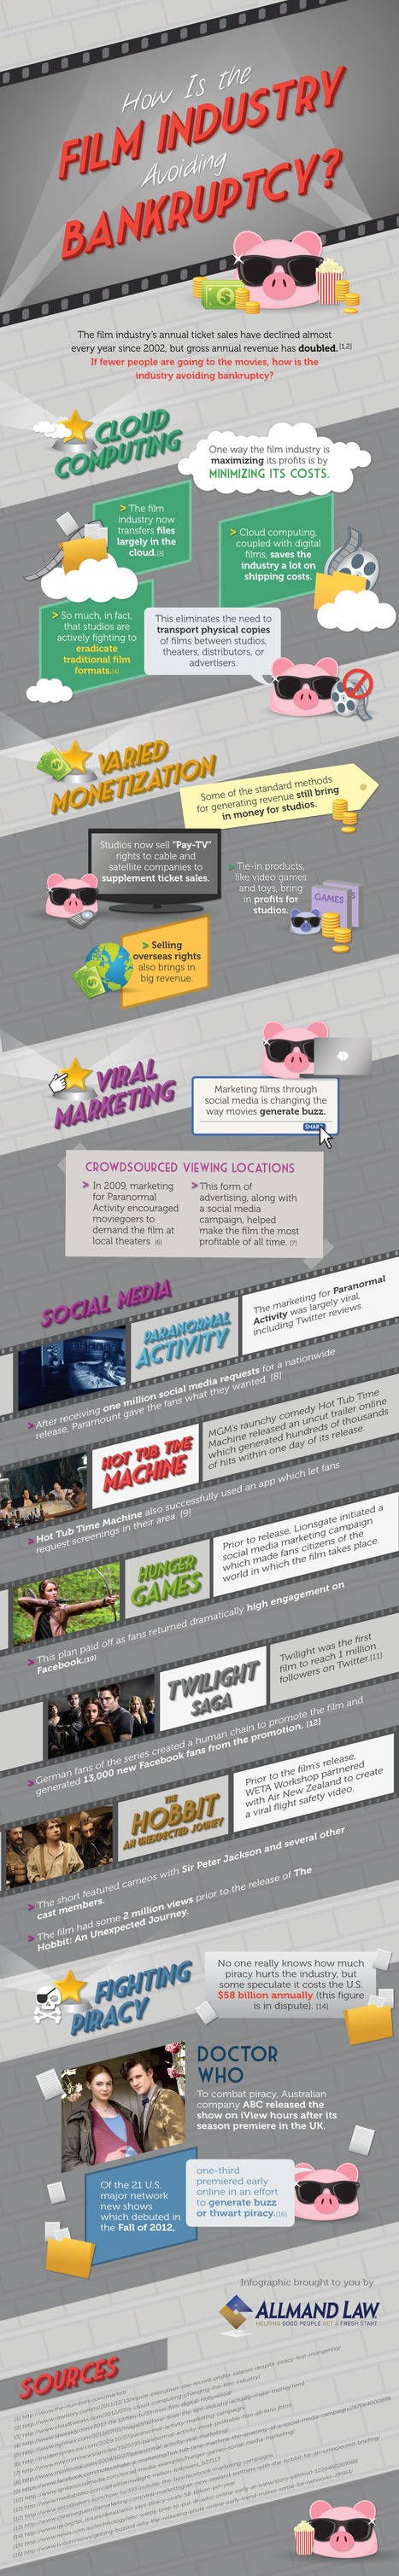 How Social Media and Viral Marketing are Saving the Film Industry [INFOGRAPHIC] | DV8 Digital Marketing Tips and Insight | Scoop.it